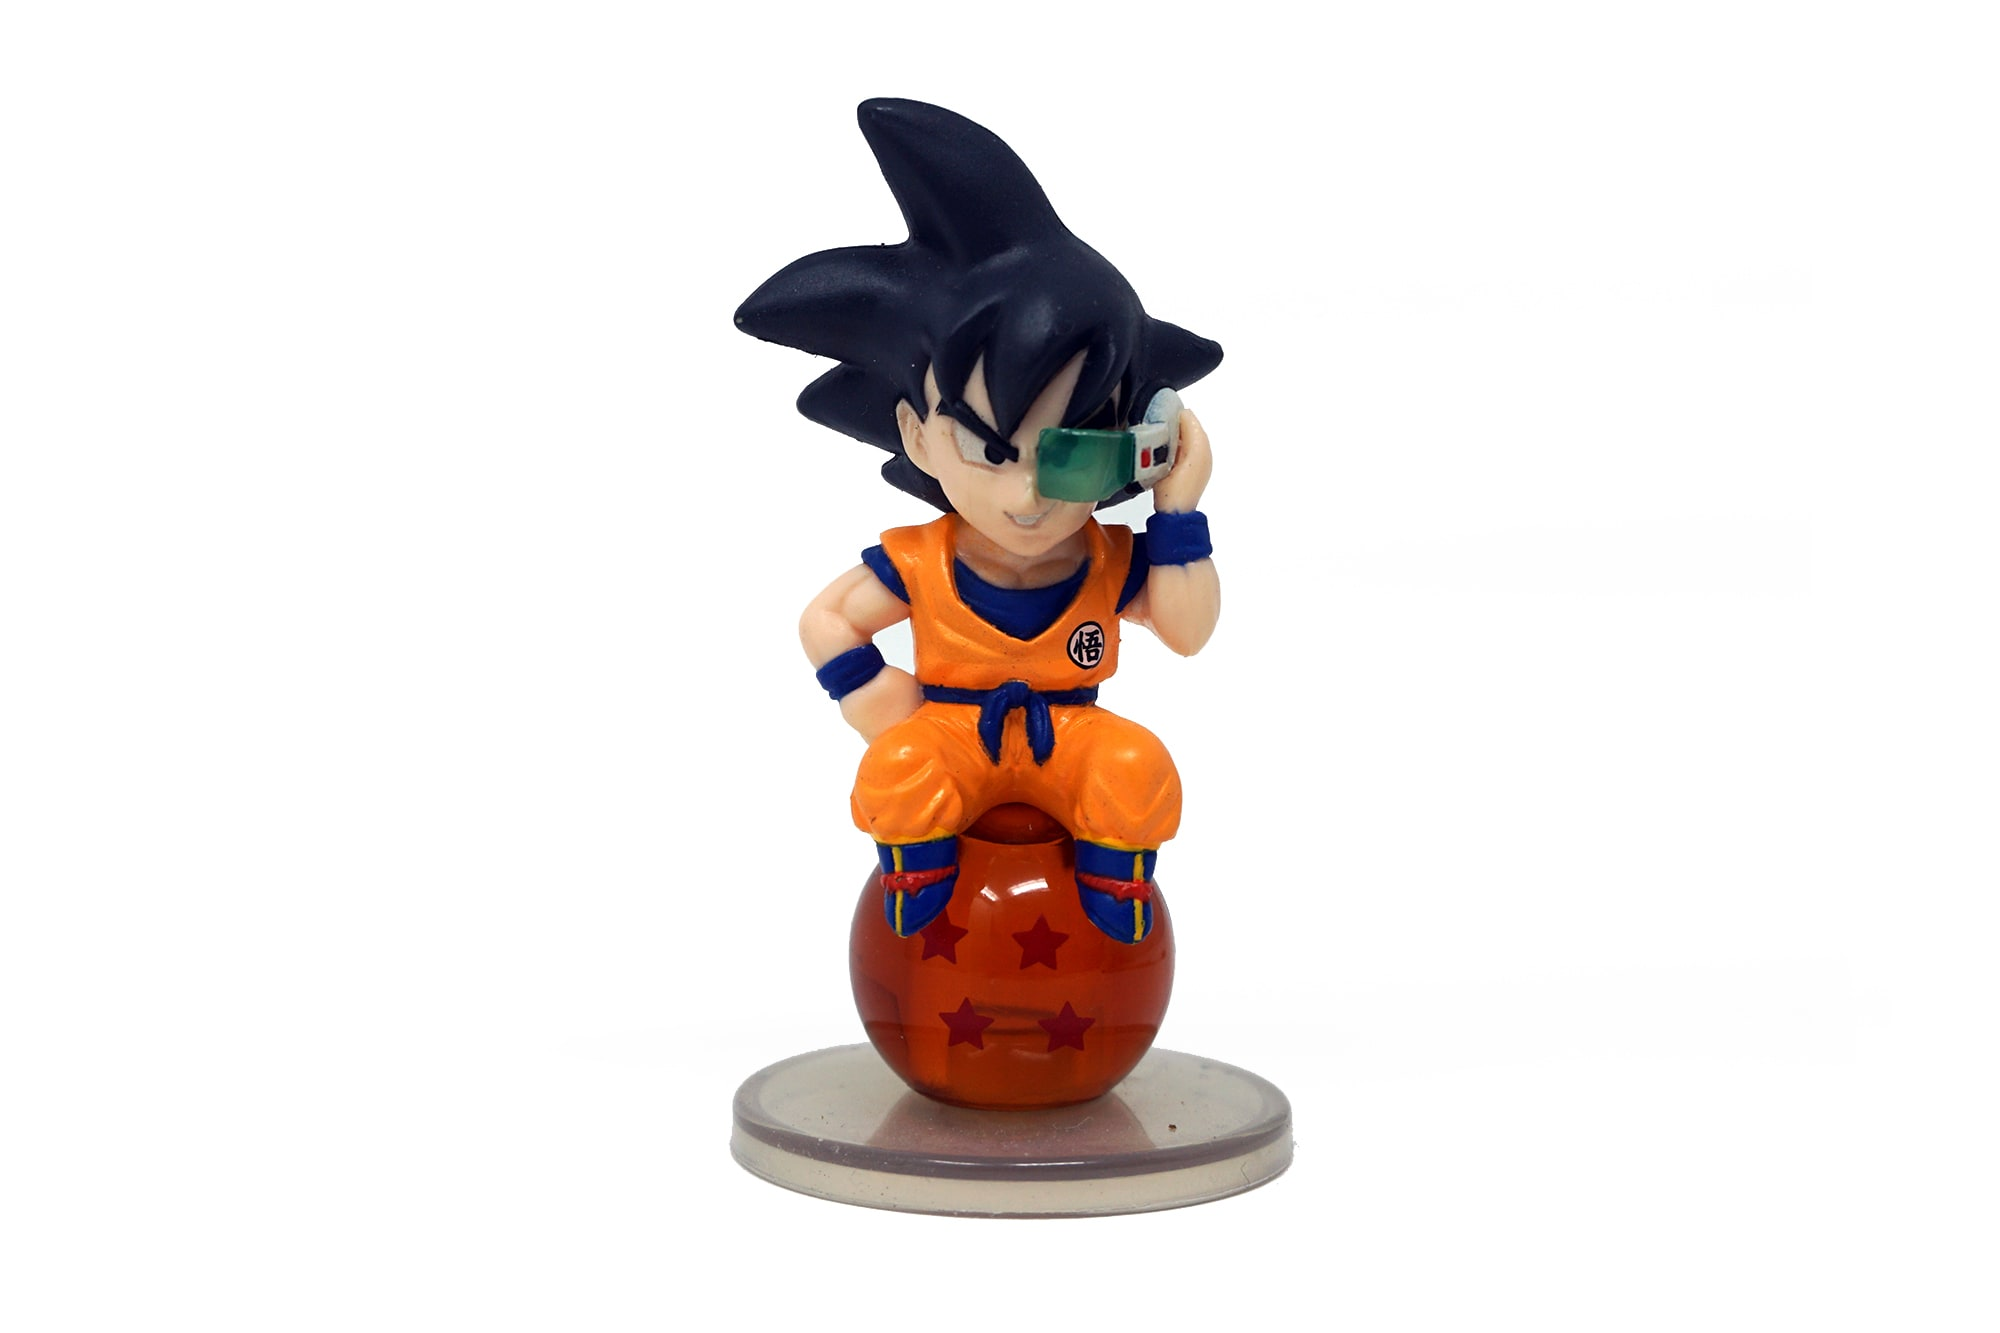 Son Goku (Power Glasses) • Collectibles Wiki